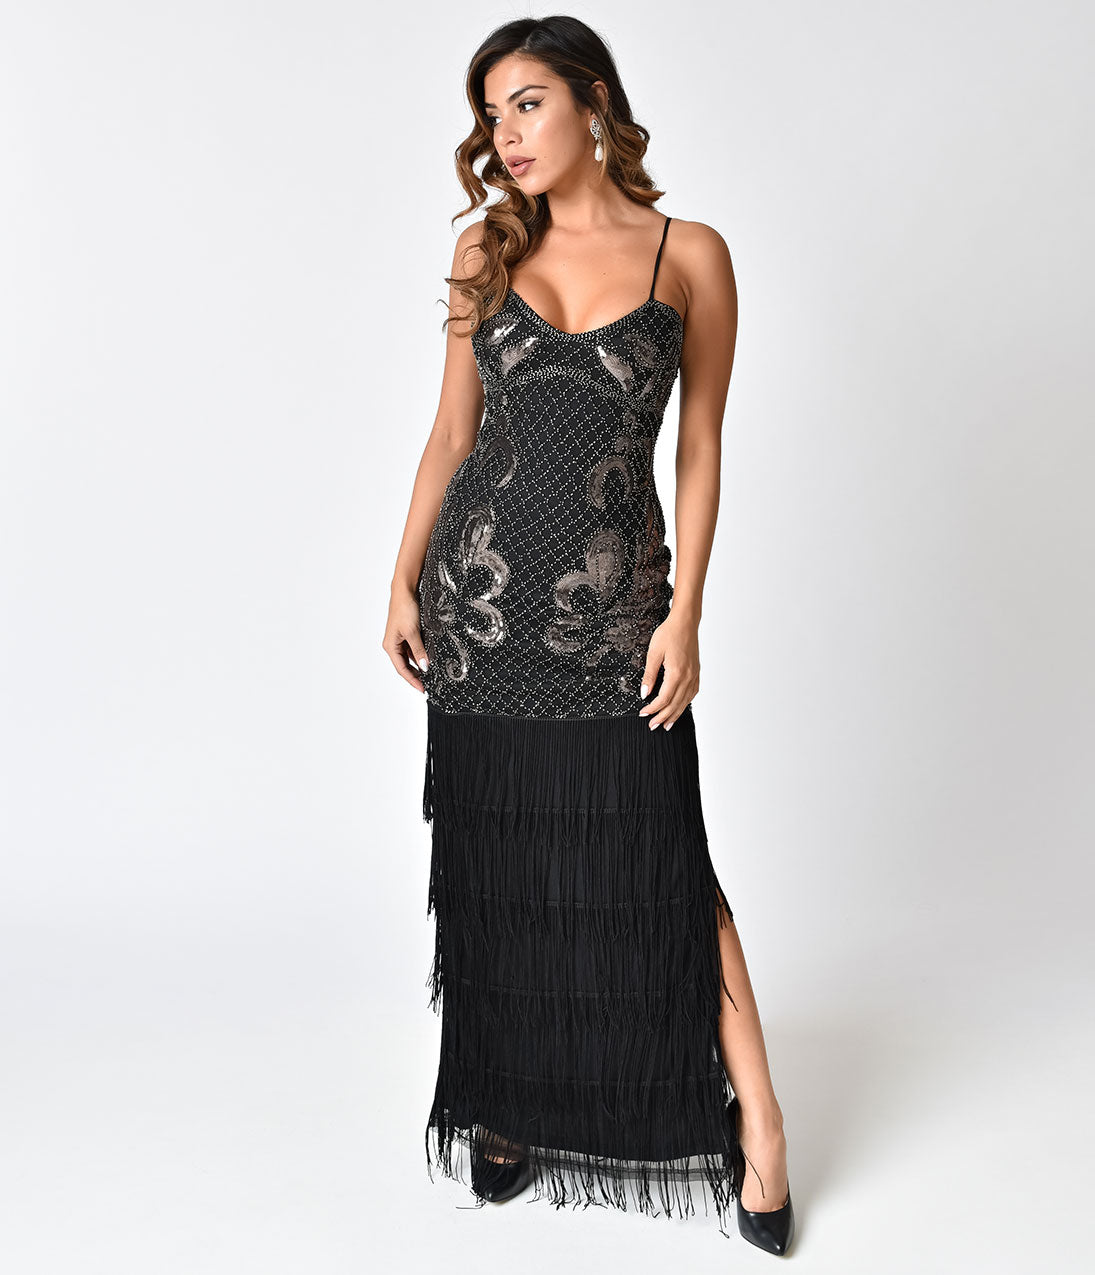 1930s Evening Dresses | Old Hollywood Dress Vintage Style Black Beaded Sexy Fringe Long Cocktail Dress $91.00 AT vintagedancer.com